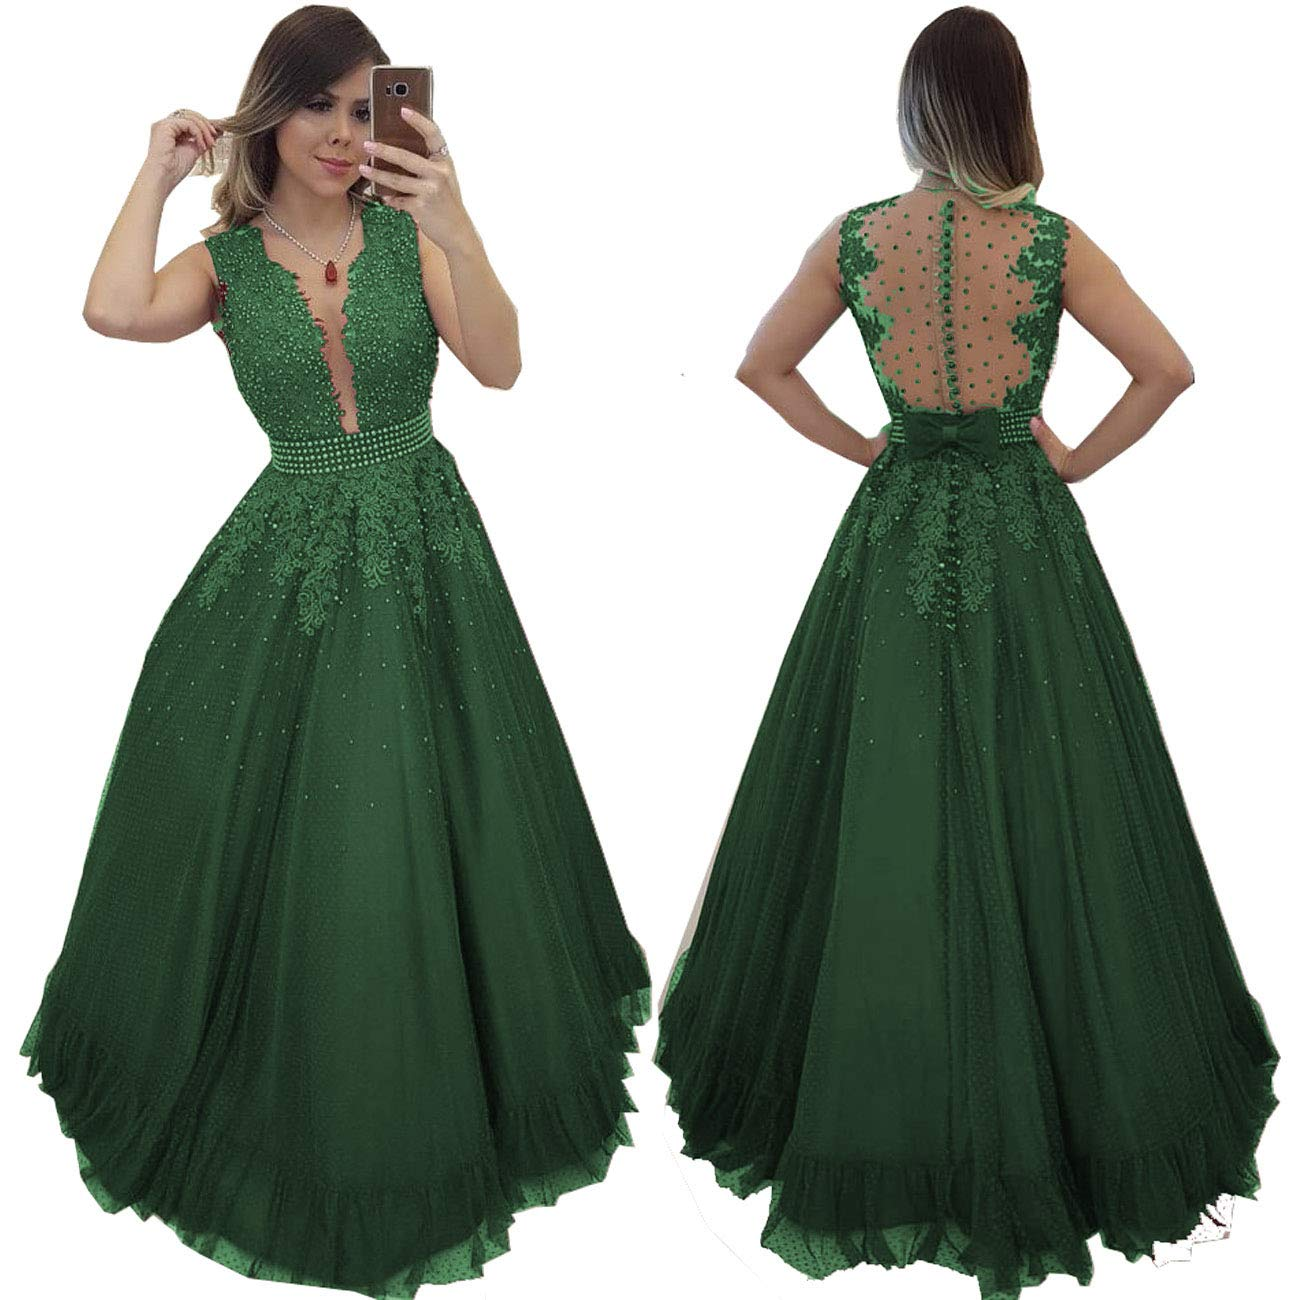 Emerald MariRobe Women's Beaded Lace Applique Prom Dresses Illusion Back Deep v Neck Long Formal Gowns